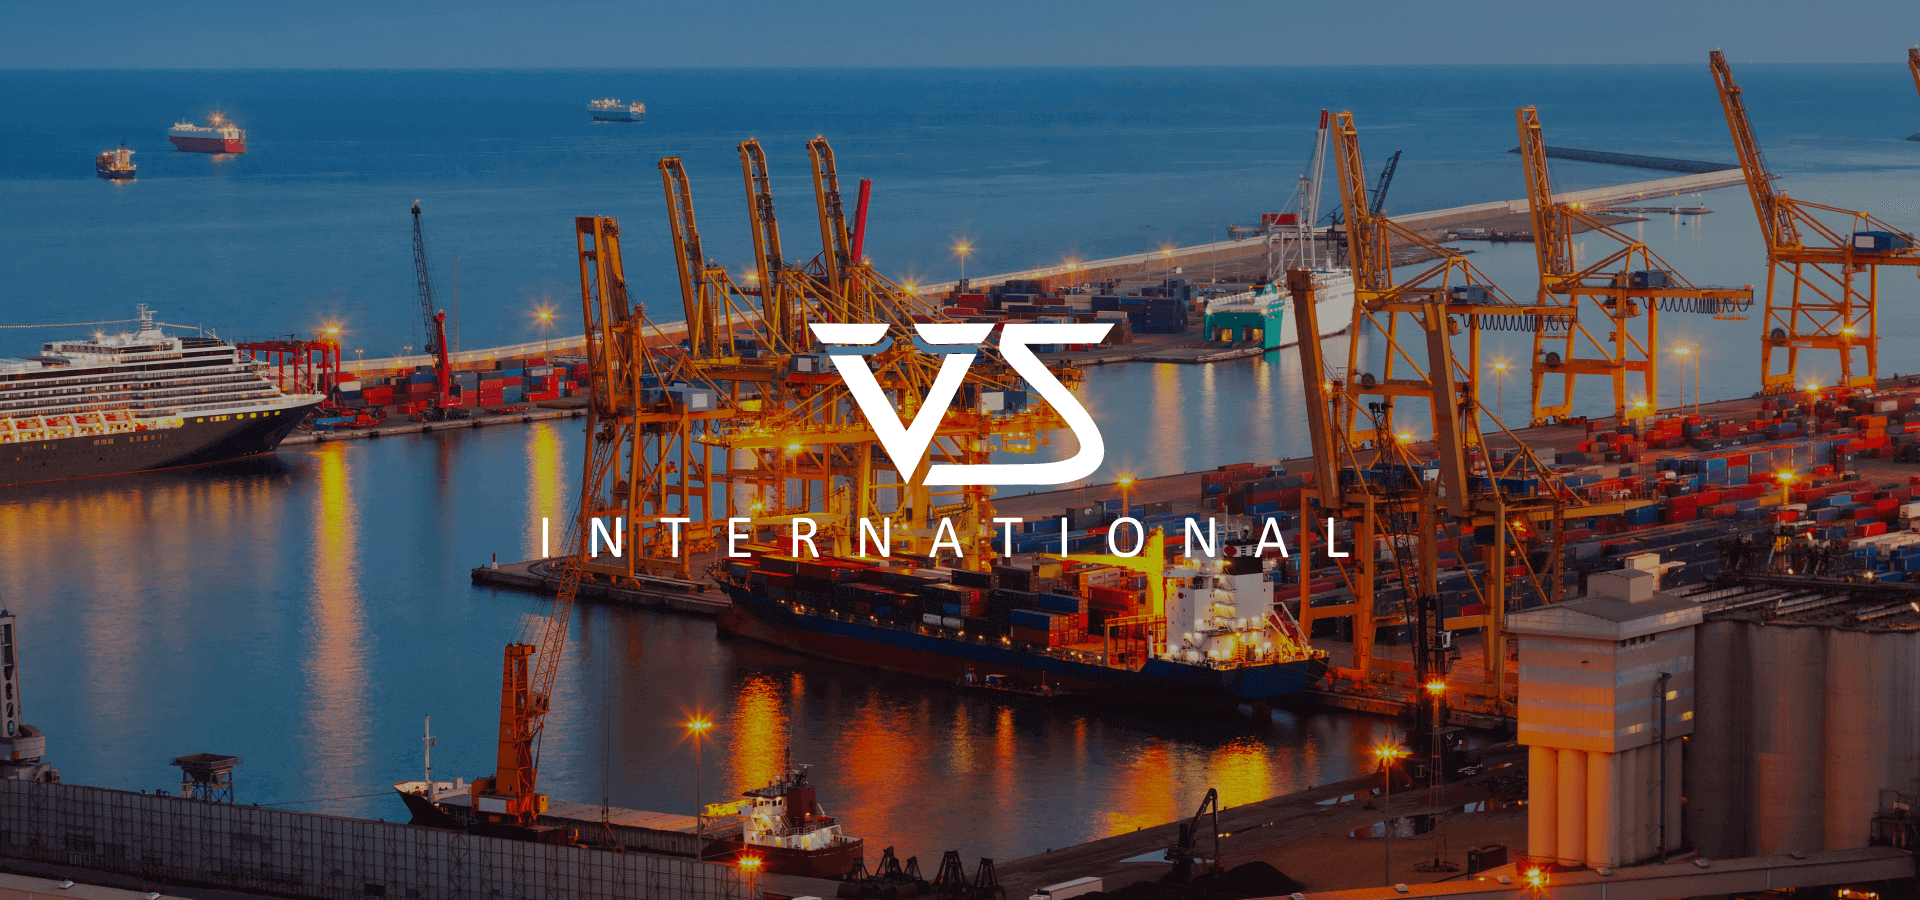 Web Design for Vs International